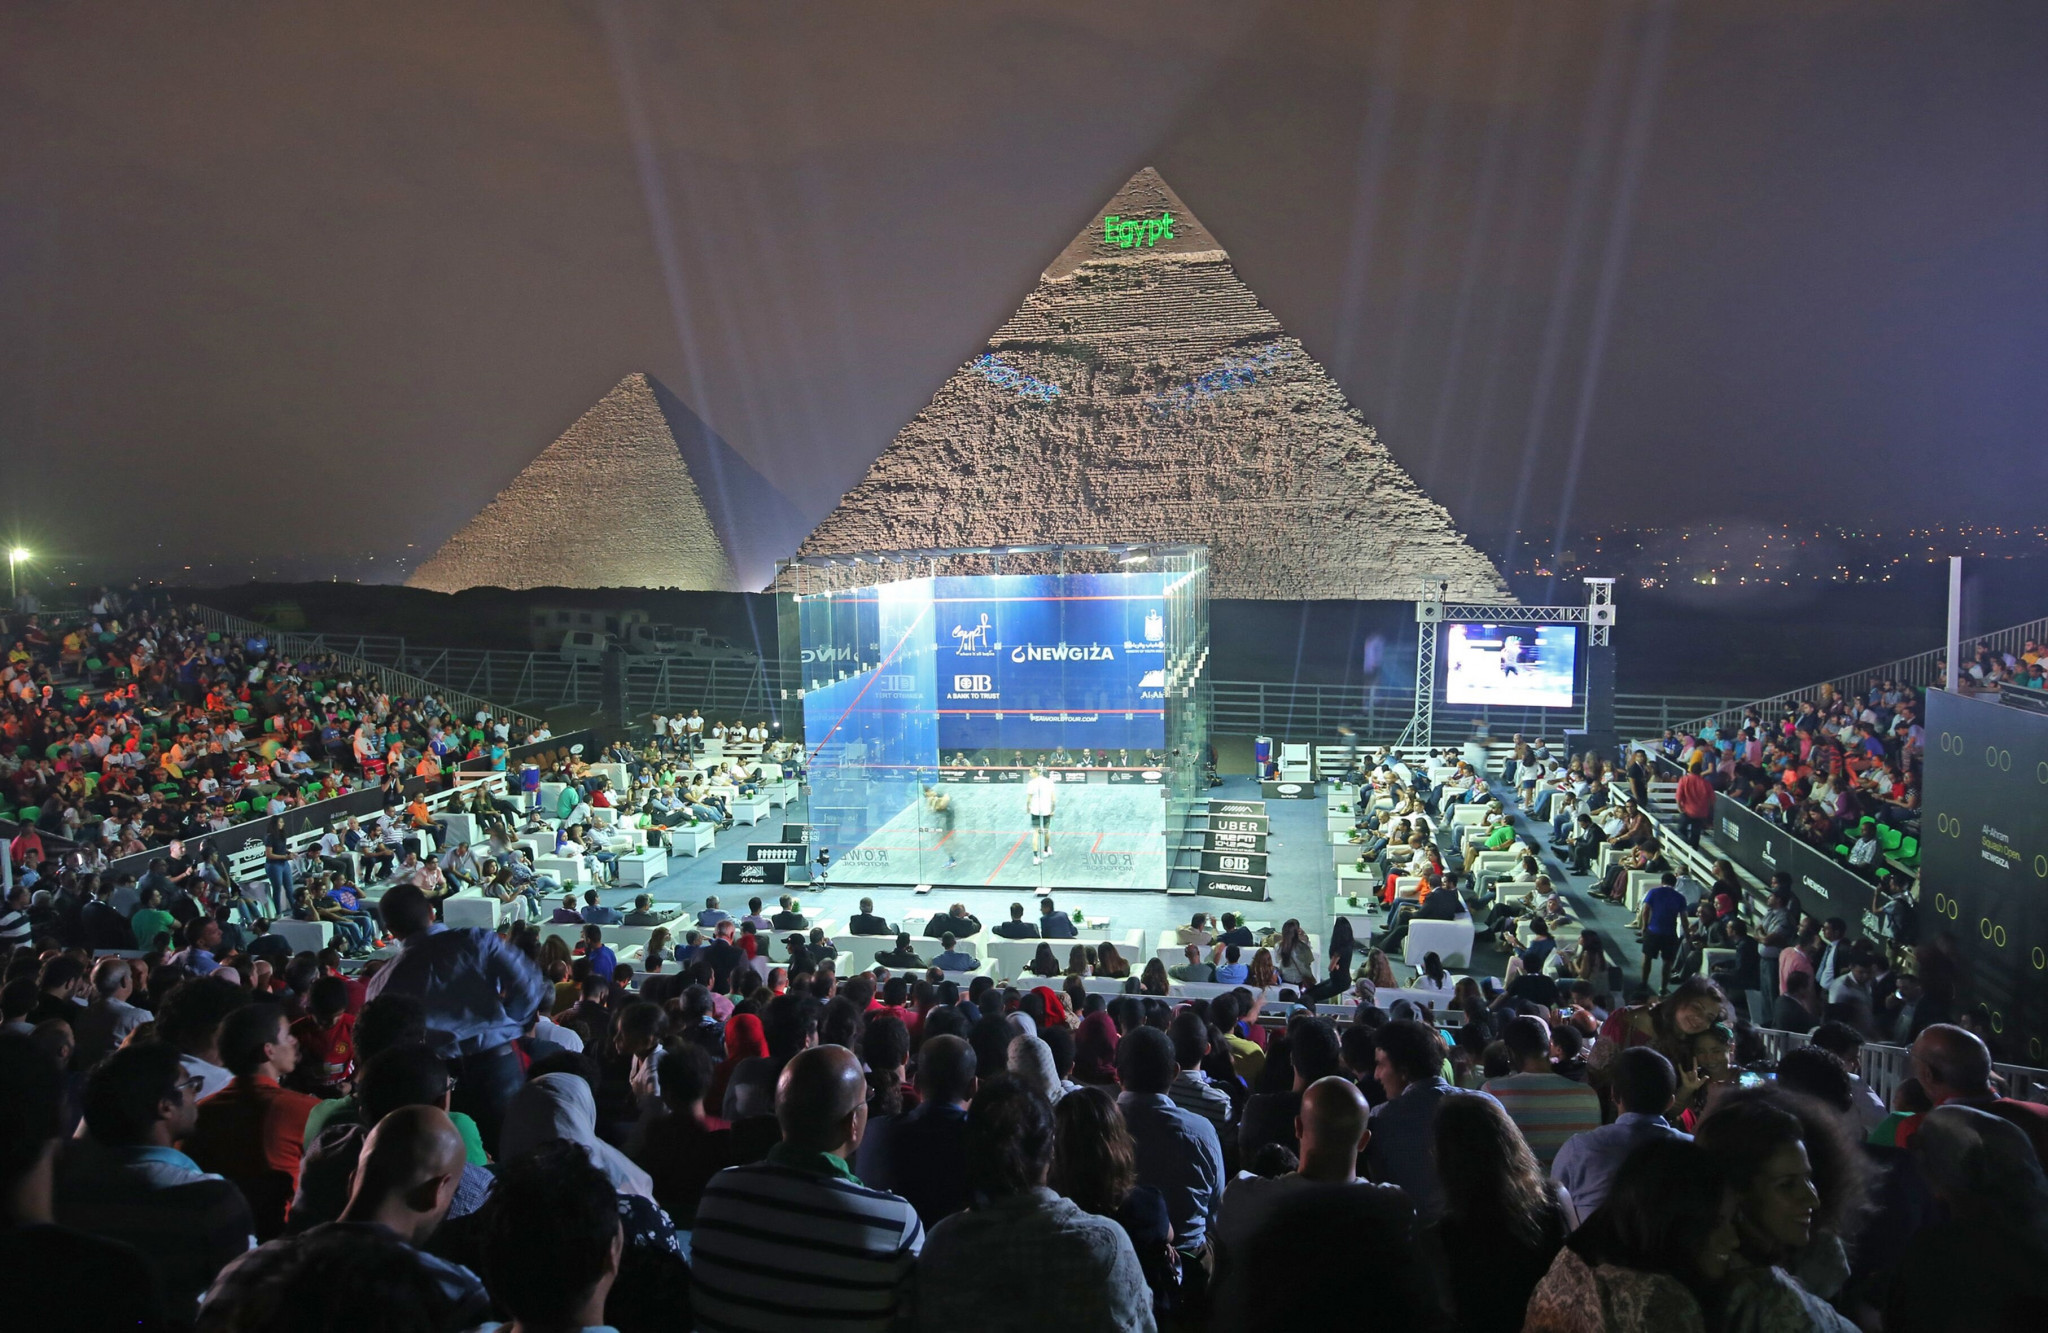 The 2019-2020 PSA Women's World Championship will take place in front of the Great Pyramid of Giza, the only ancient wonder of the world to remain largely in tact ©PSA